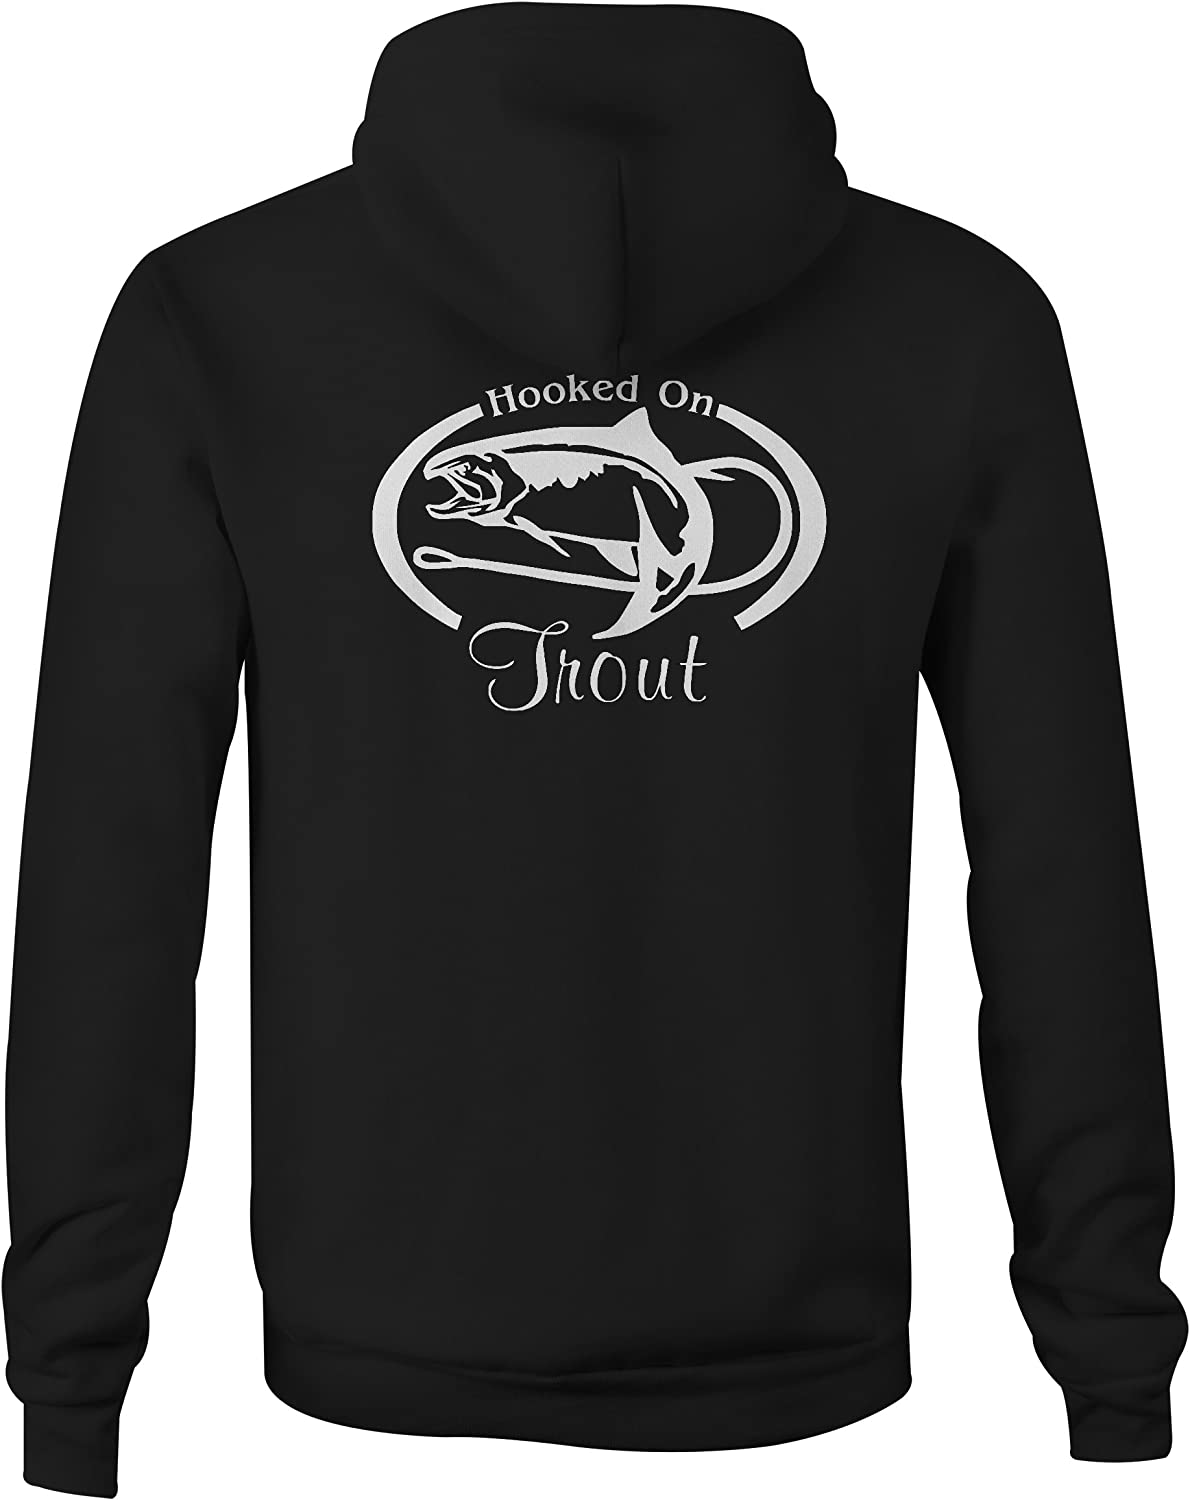 One Stop Services Zip Up Hoodie Hooked on Trout Fishing Hook Sweatshirt 3XL